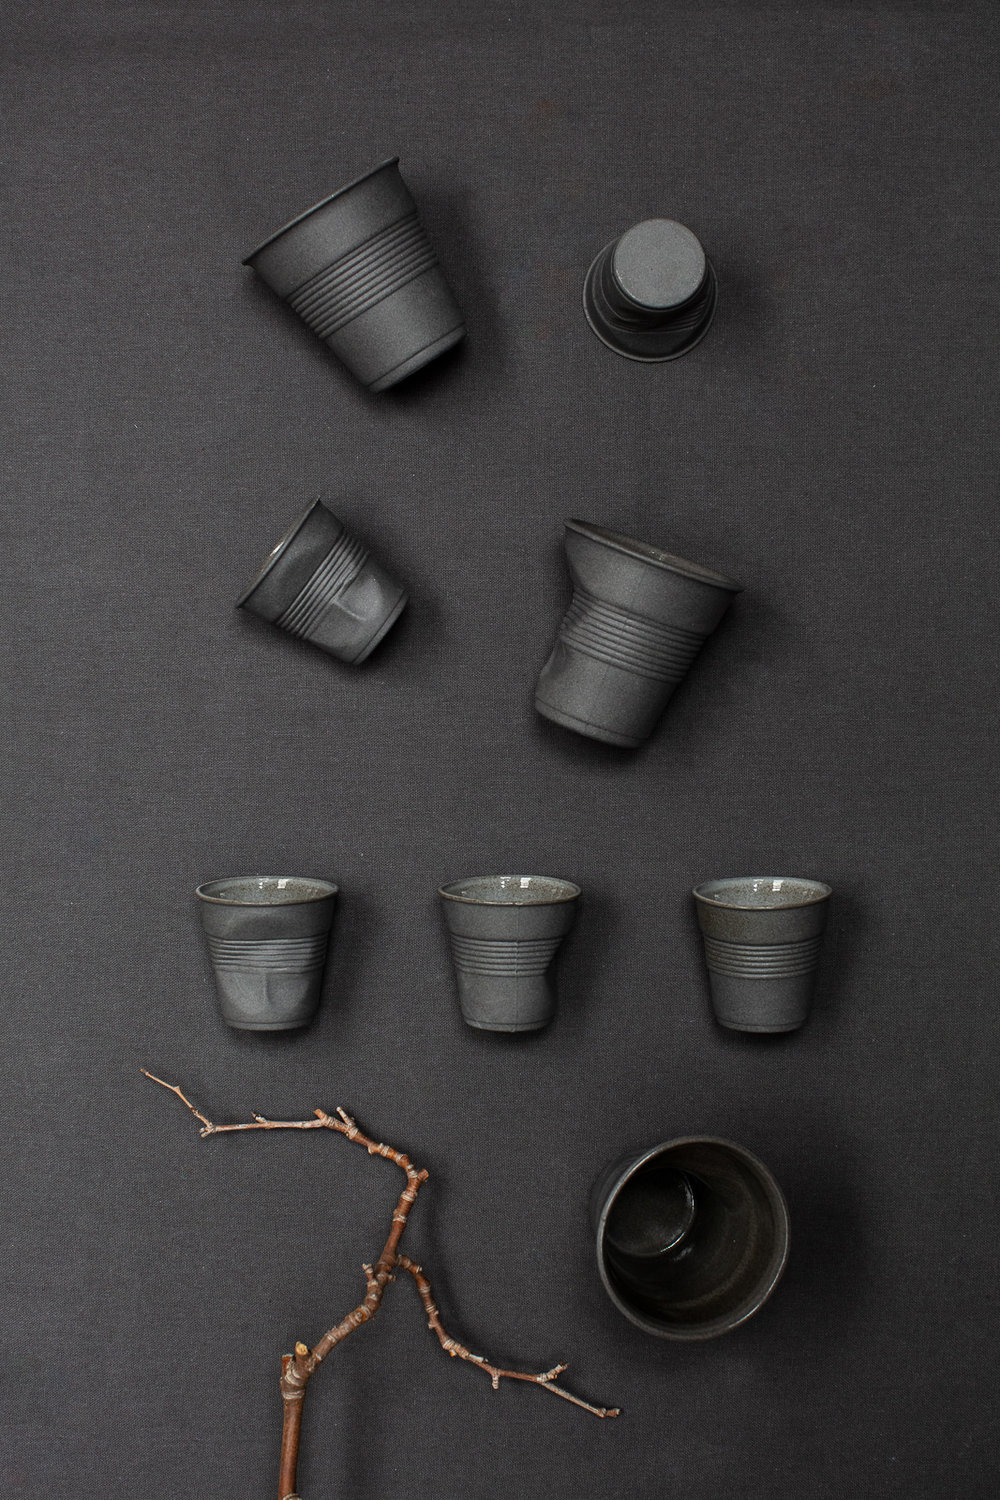 Franck_Hamel_naturemorte_stilllife_stilllifephotographer_ Revol_photographenaturemorte_valeriepaumelle_agent (10).jpg